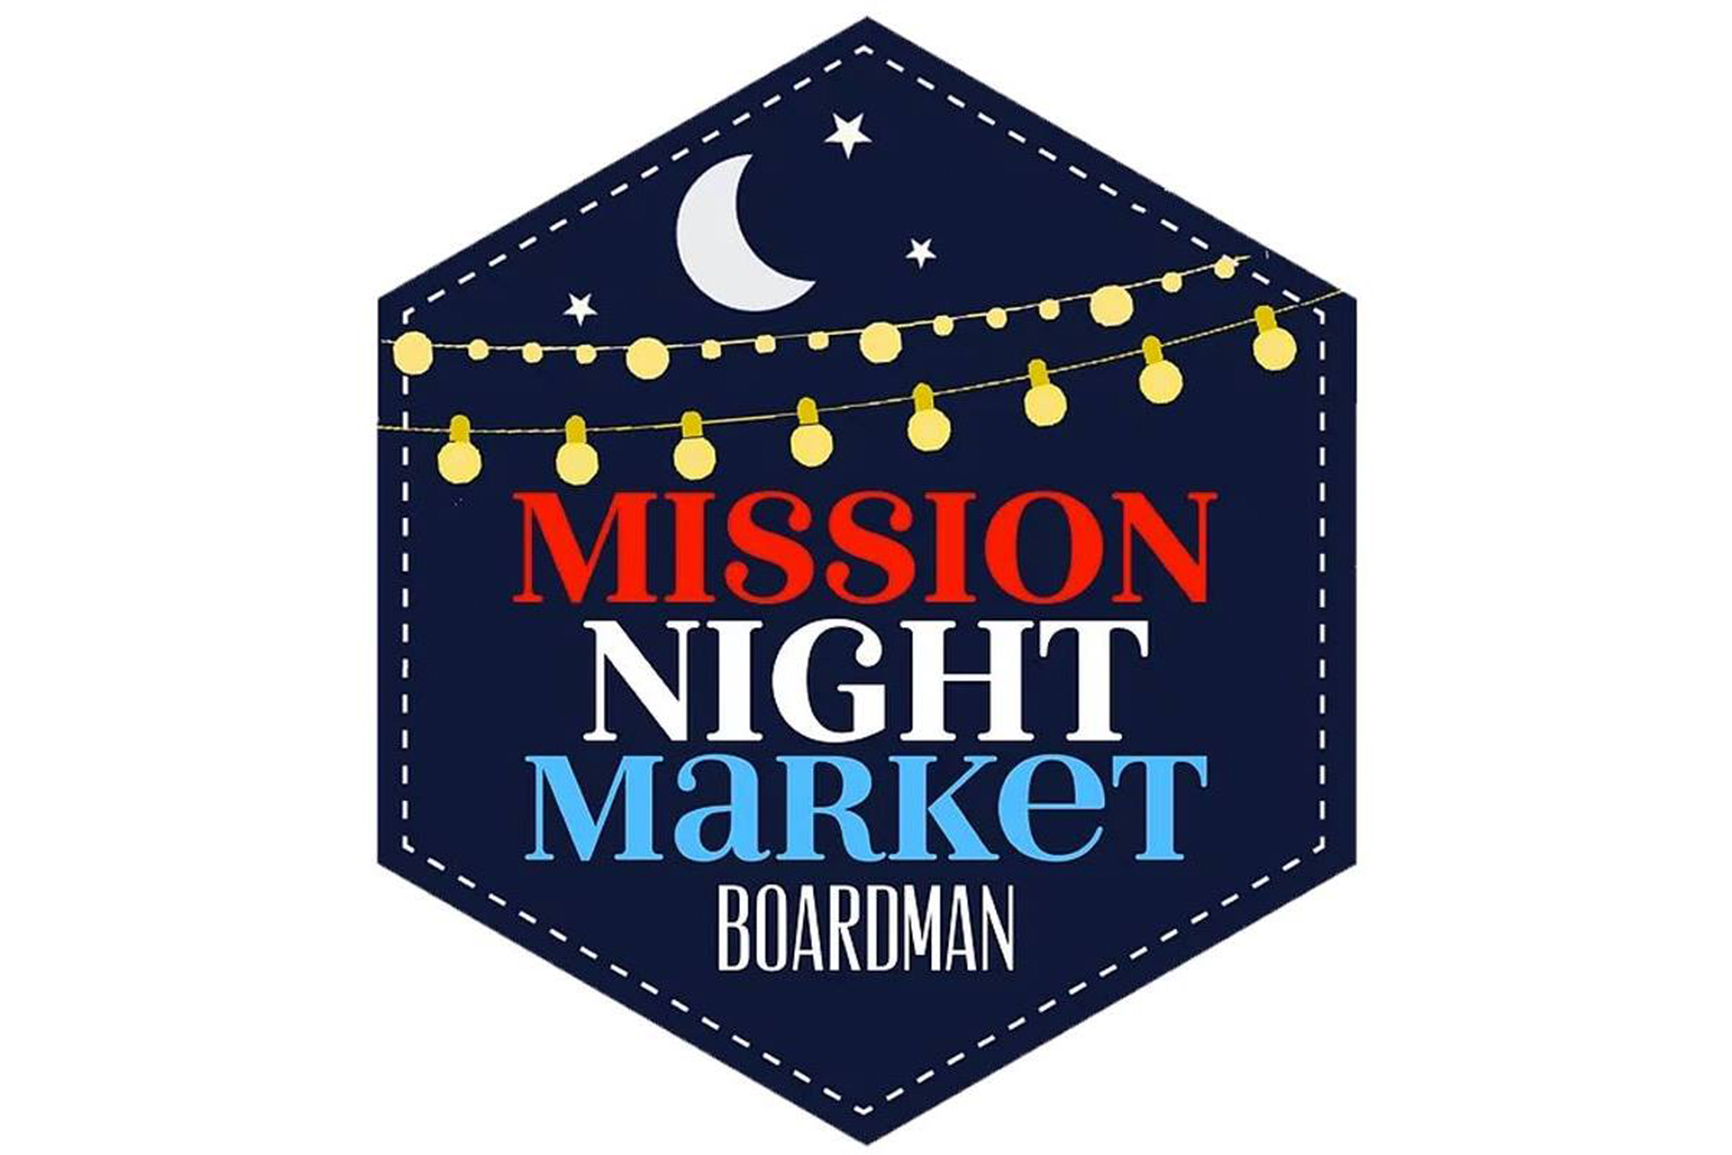 Mission Night Market